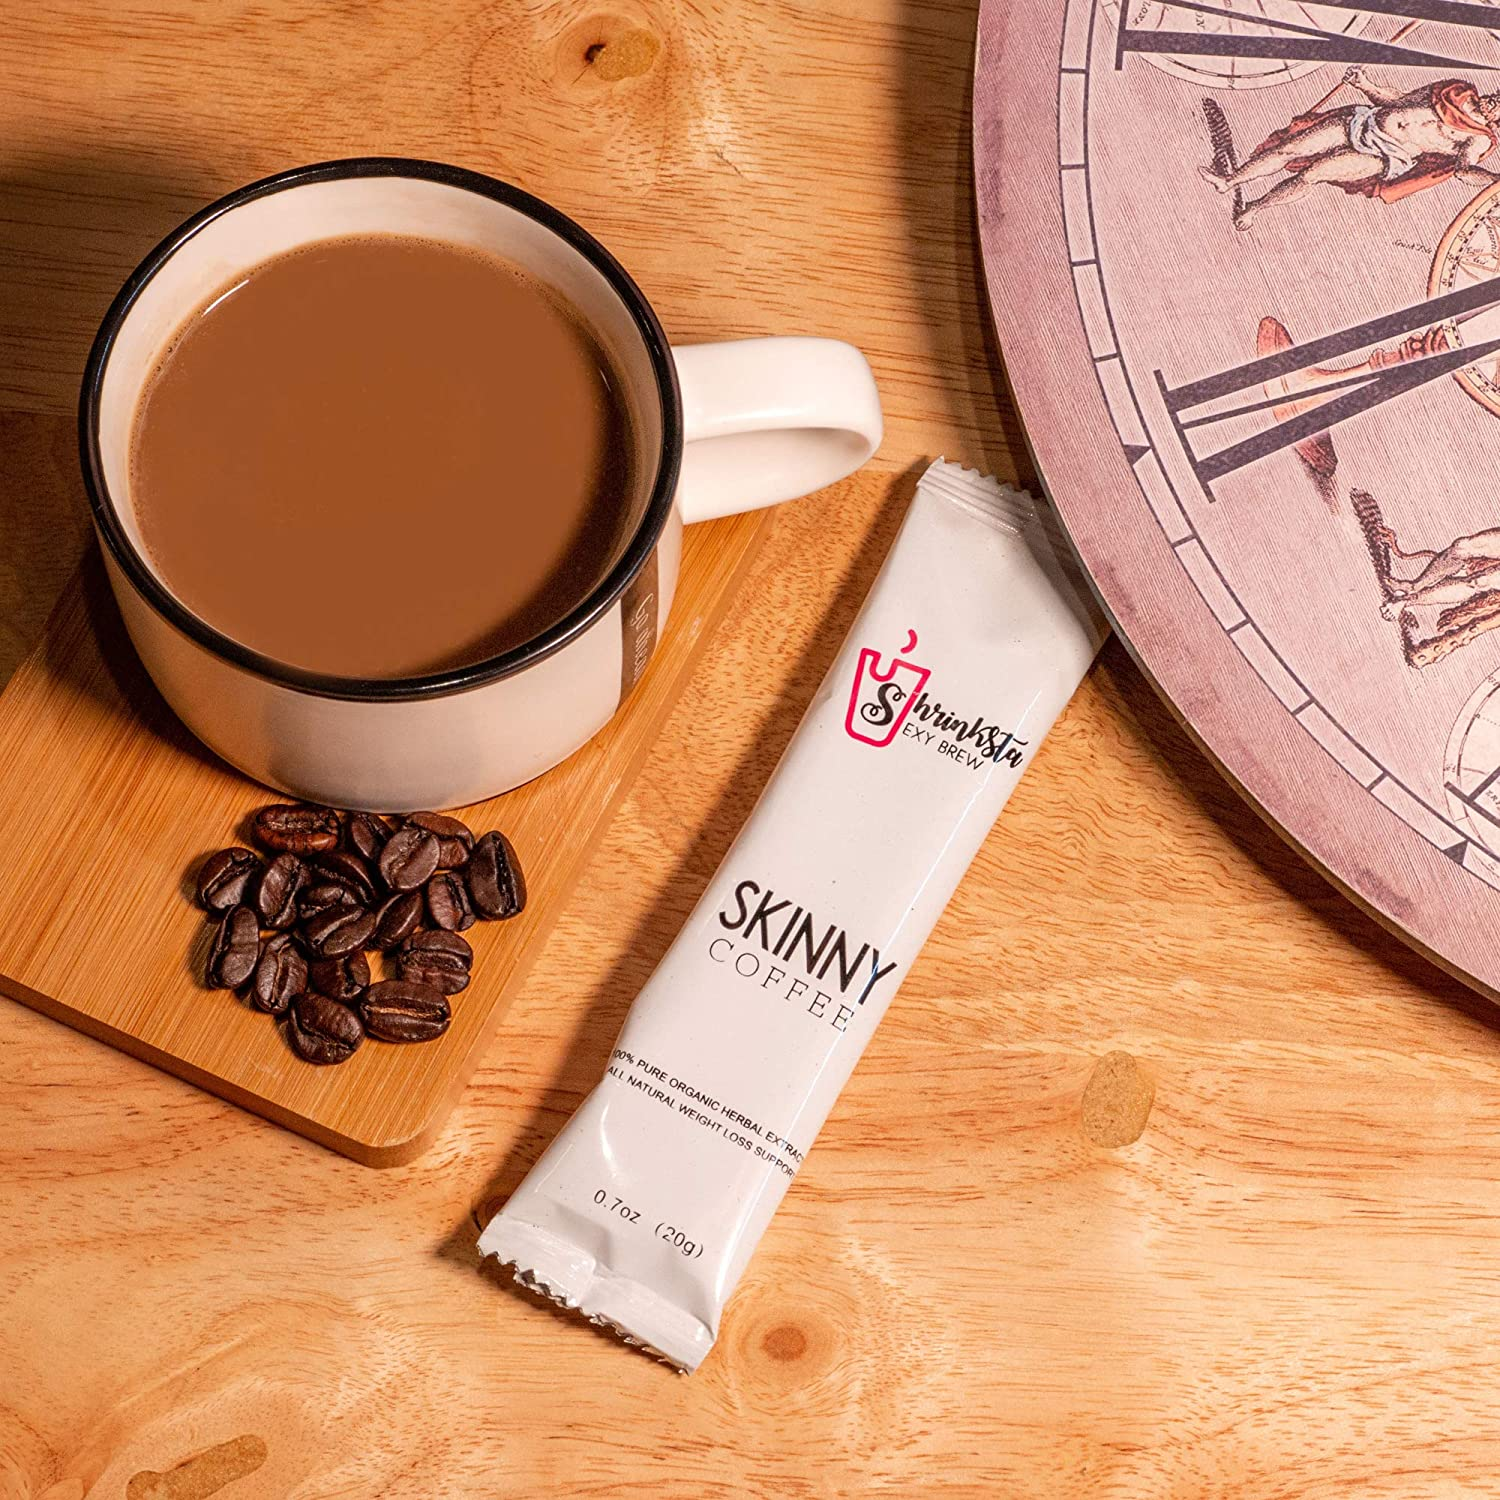 Shrinksta Organic Slimming Weightloss Coffee - All Natural, Vegan Latte, Sugar Free   Perfect On-The-Go Support For The Busy, Health-Conscious   20 Packets a Box, 3 Flavors Available